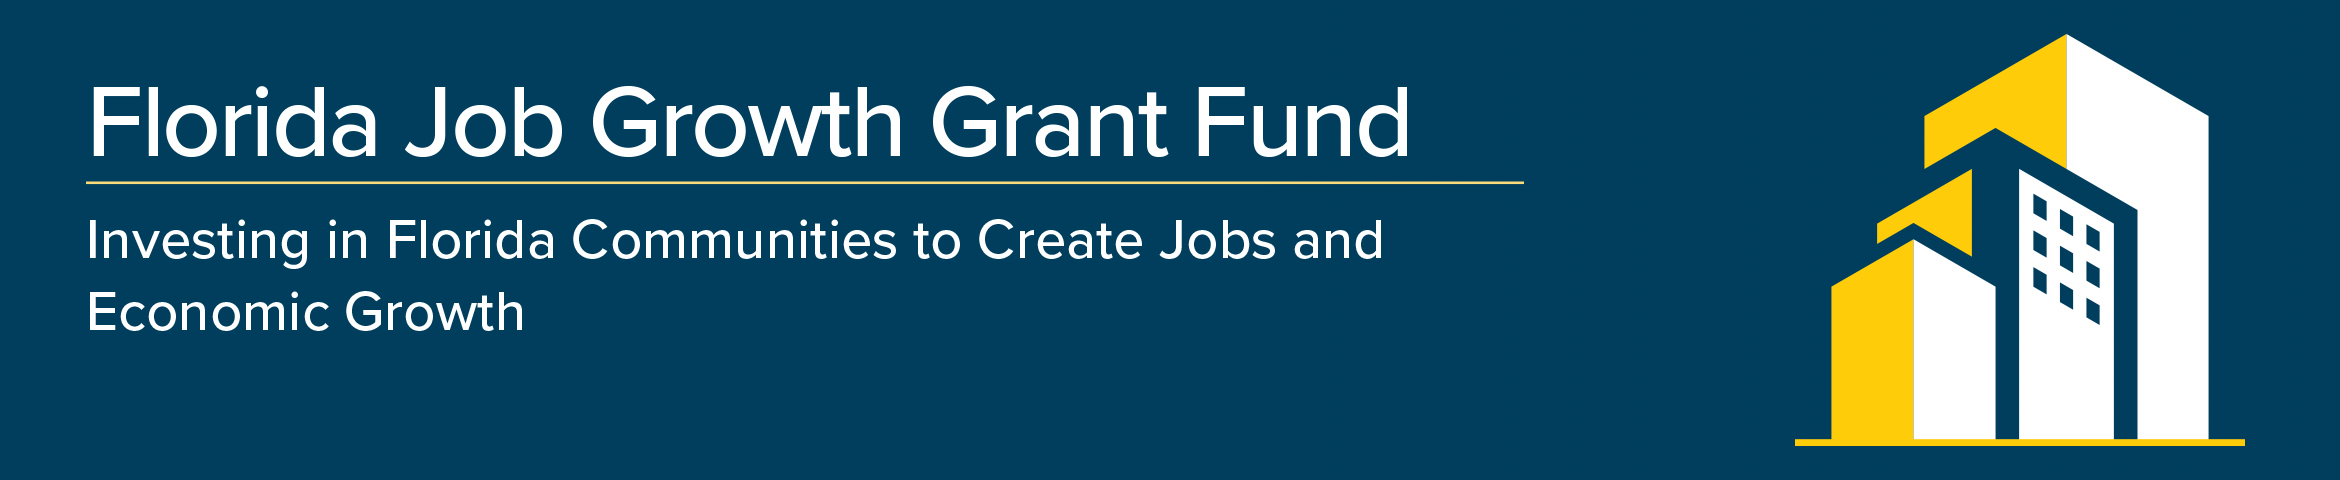 Florida Job Growth Grant Fund